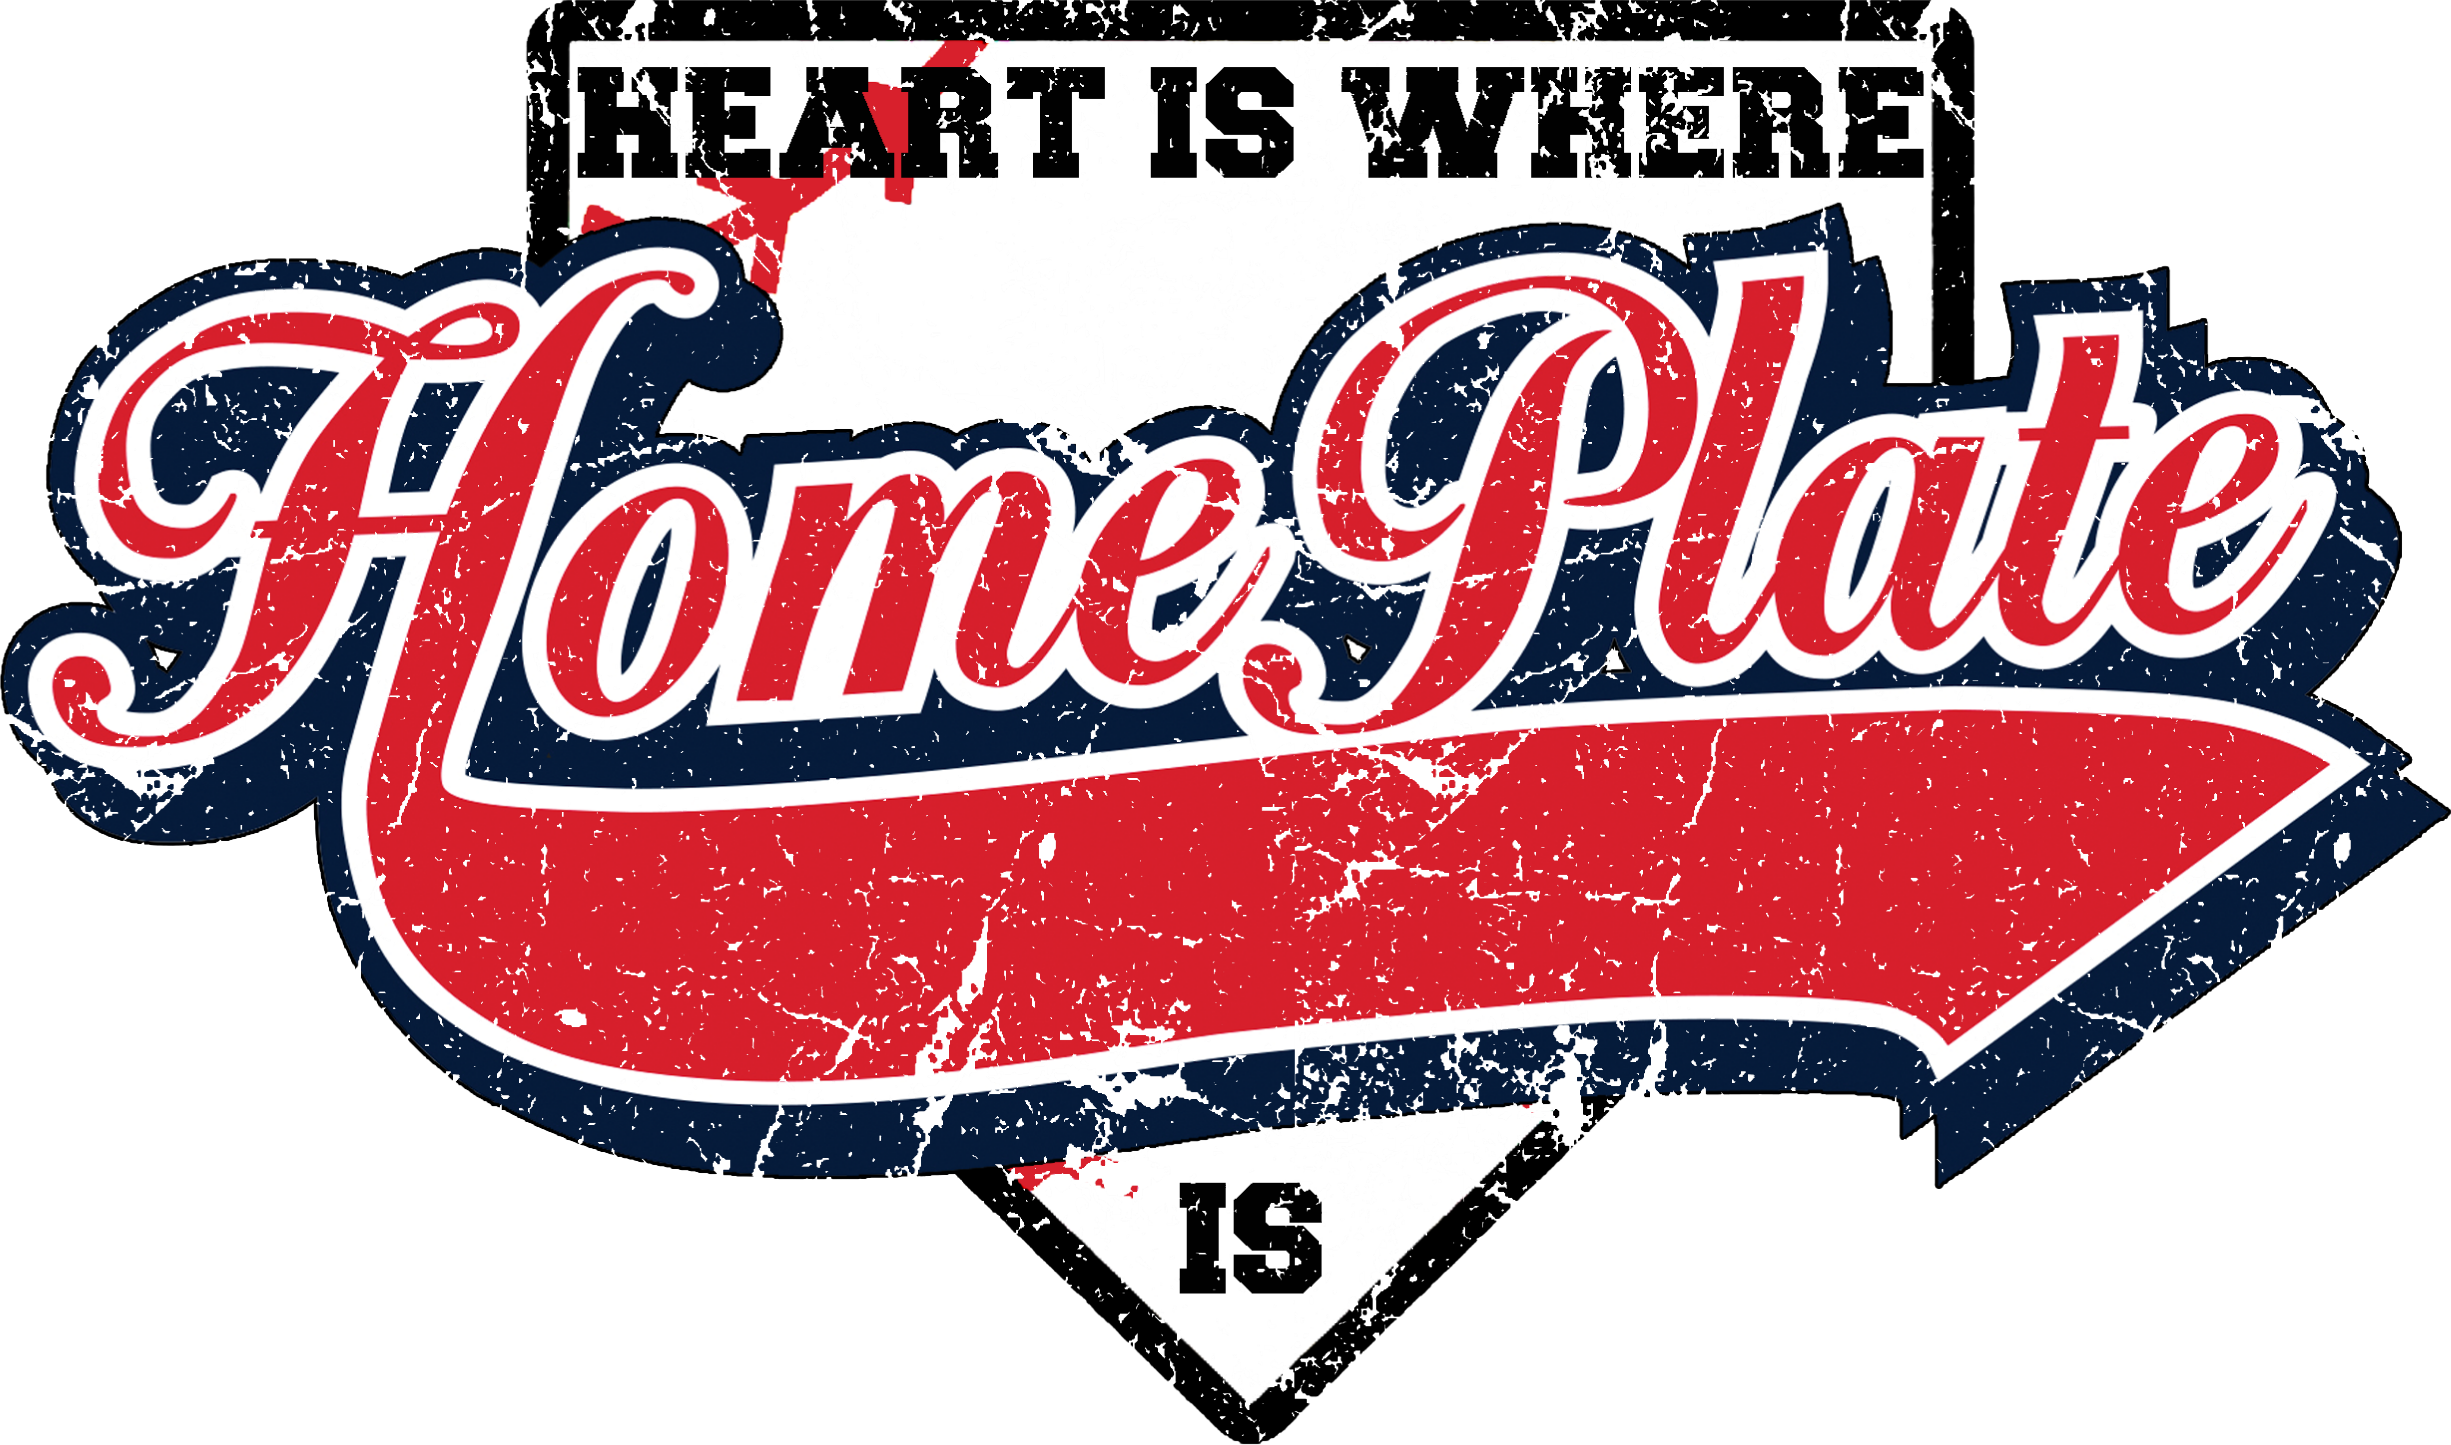 Heart Is Where Otters Home Plate Is